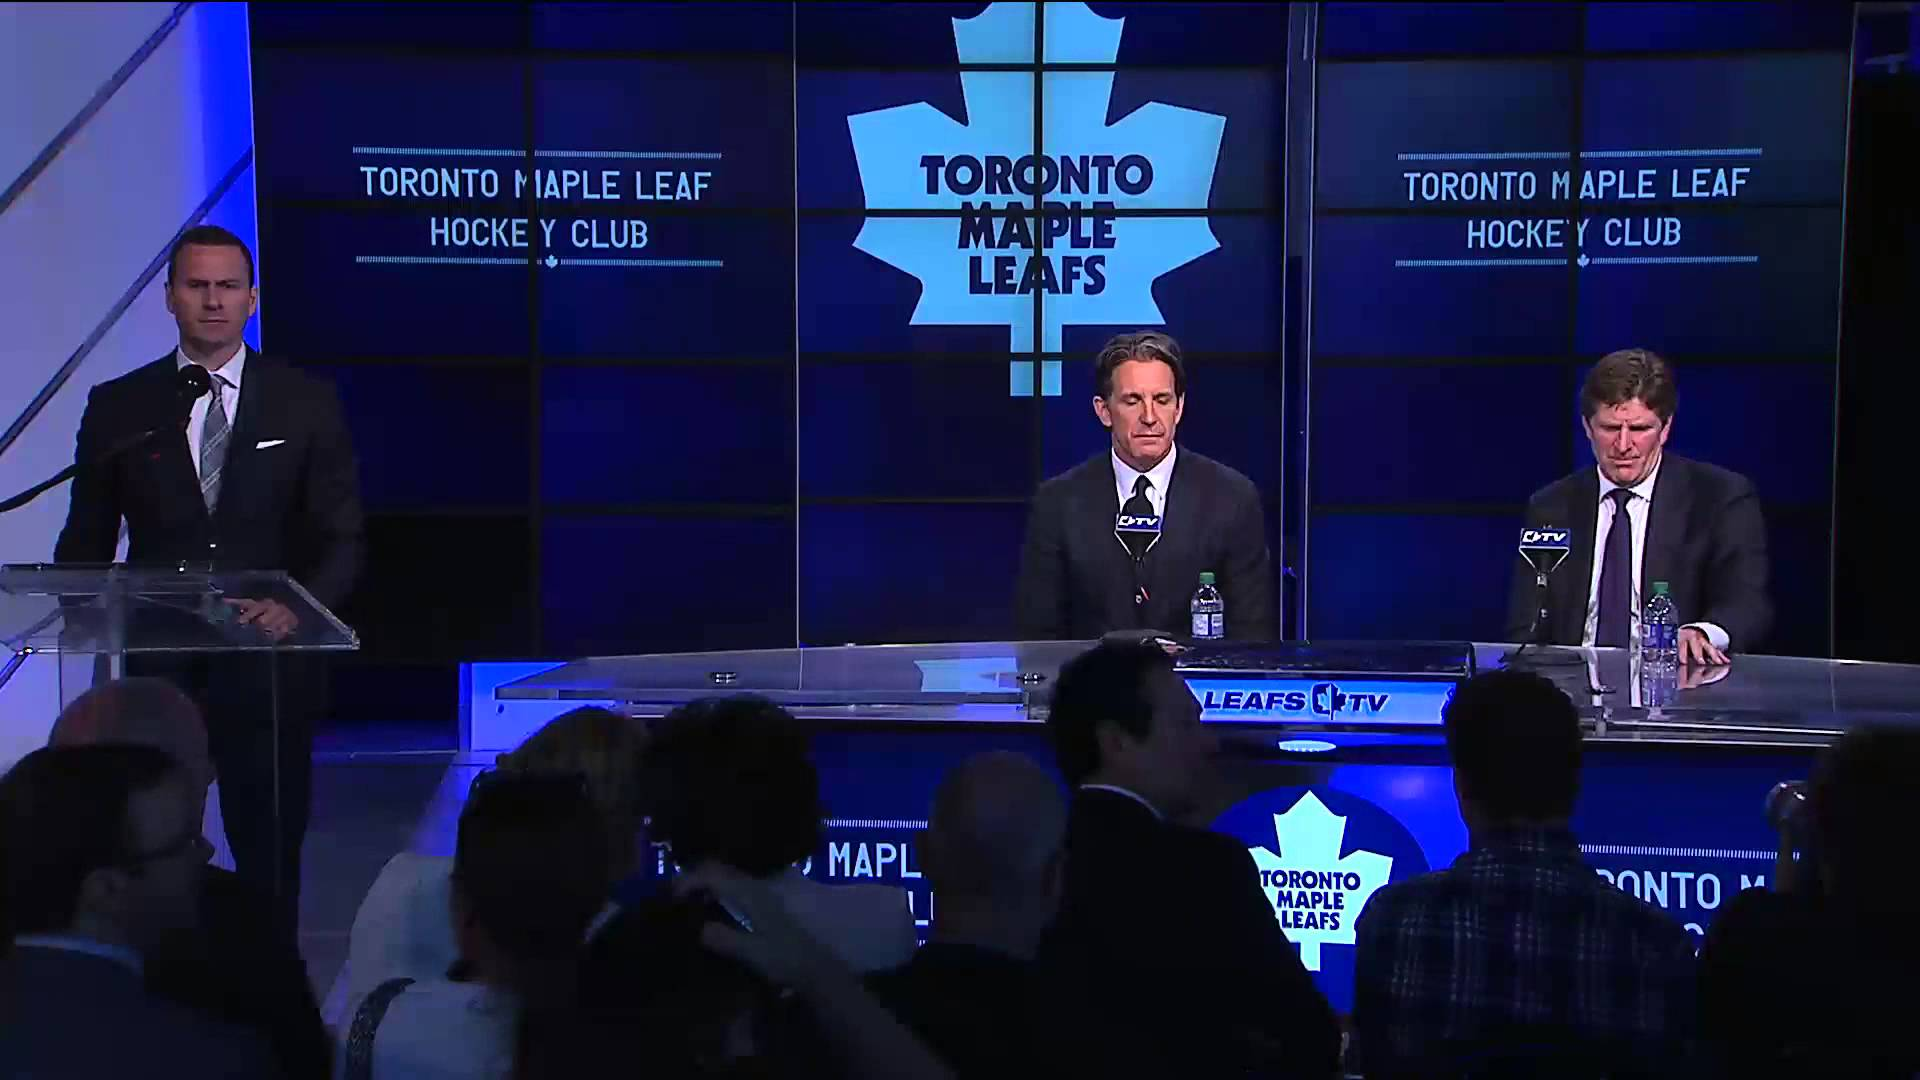 Toronto Maple Leafs introduce Mike Babcock (Full Press Conference)